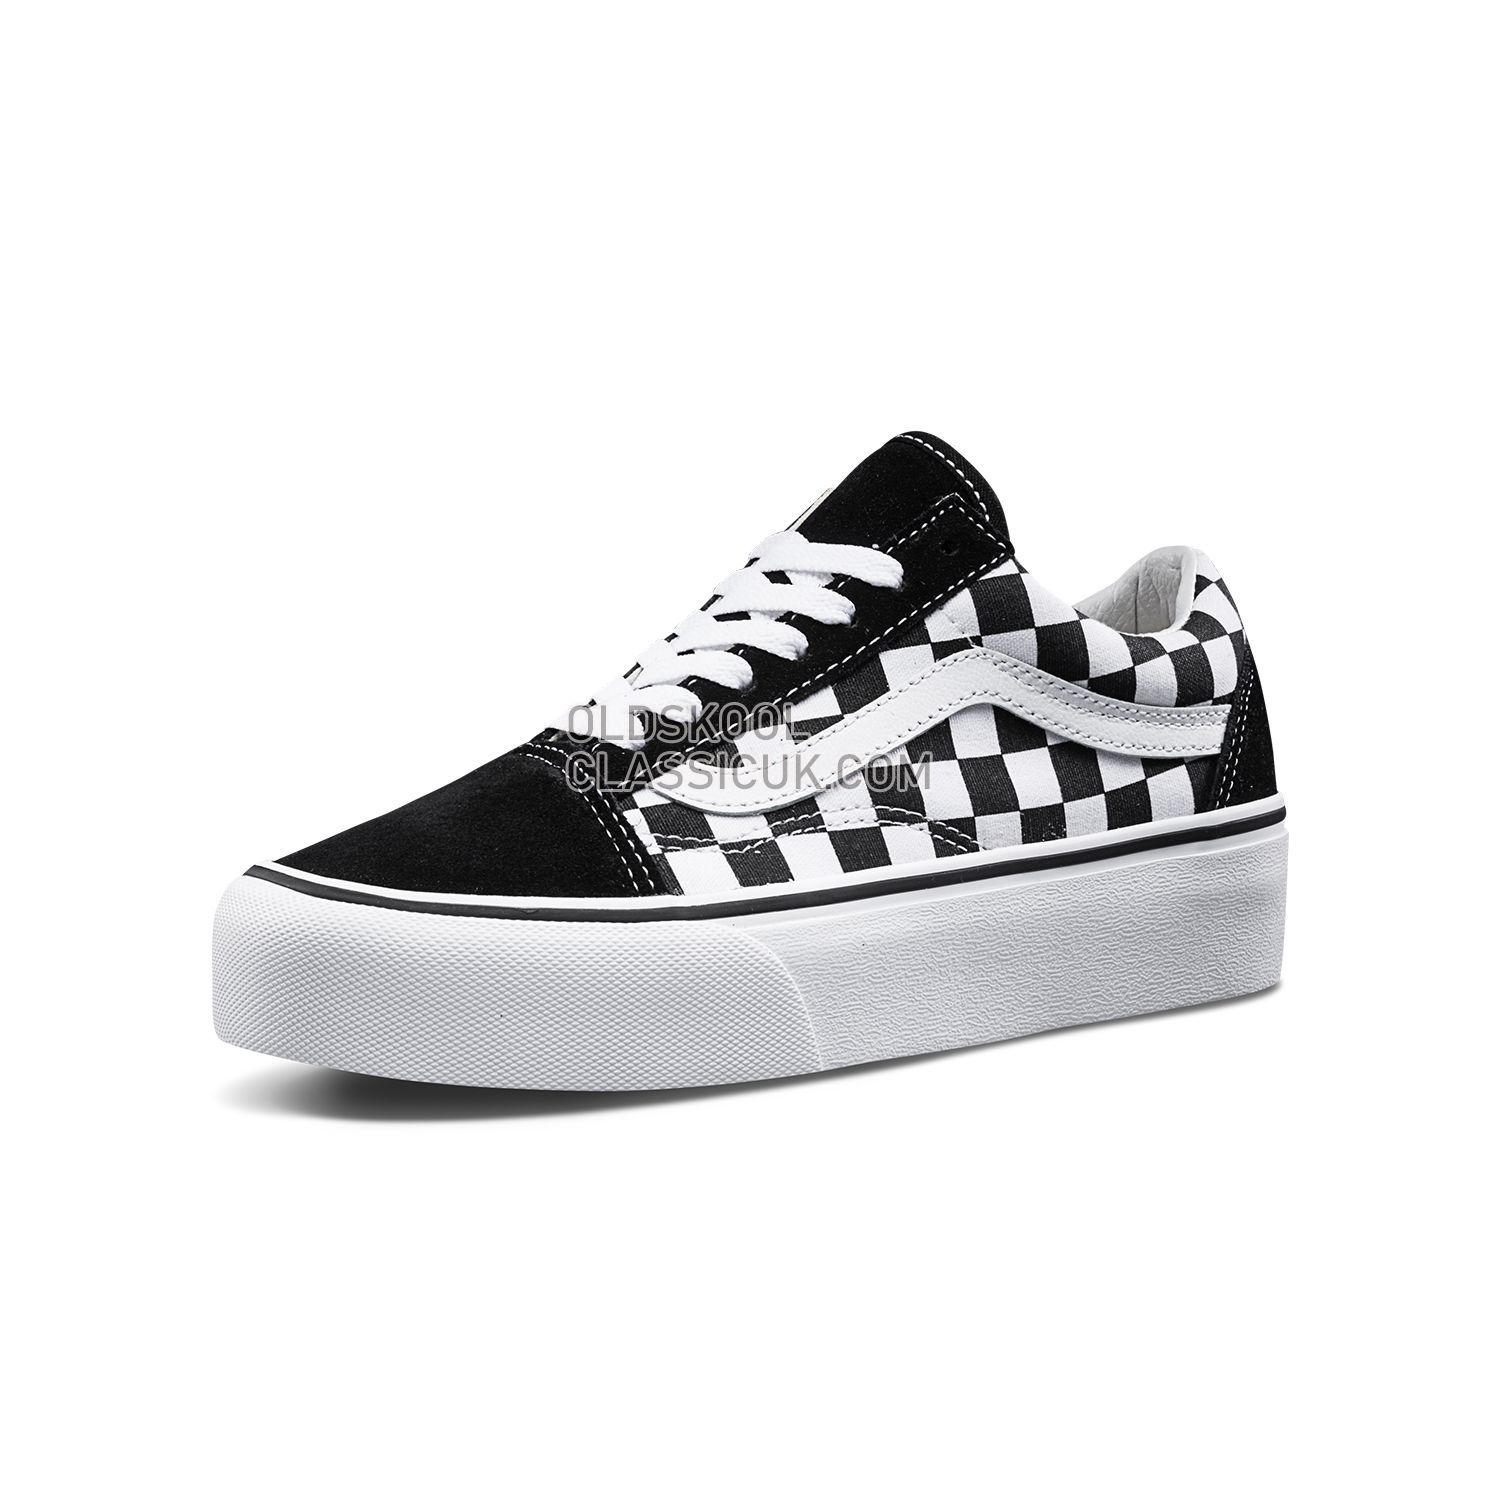 75f4e7a12386 ... Vans Checkerboardboard Old Skool Platform Sneakers Mens Womens Unisex  Black-True White B3UHRK Shoes ...